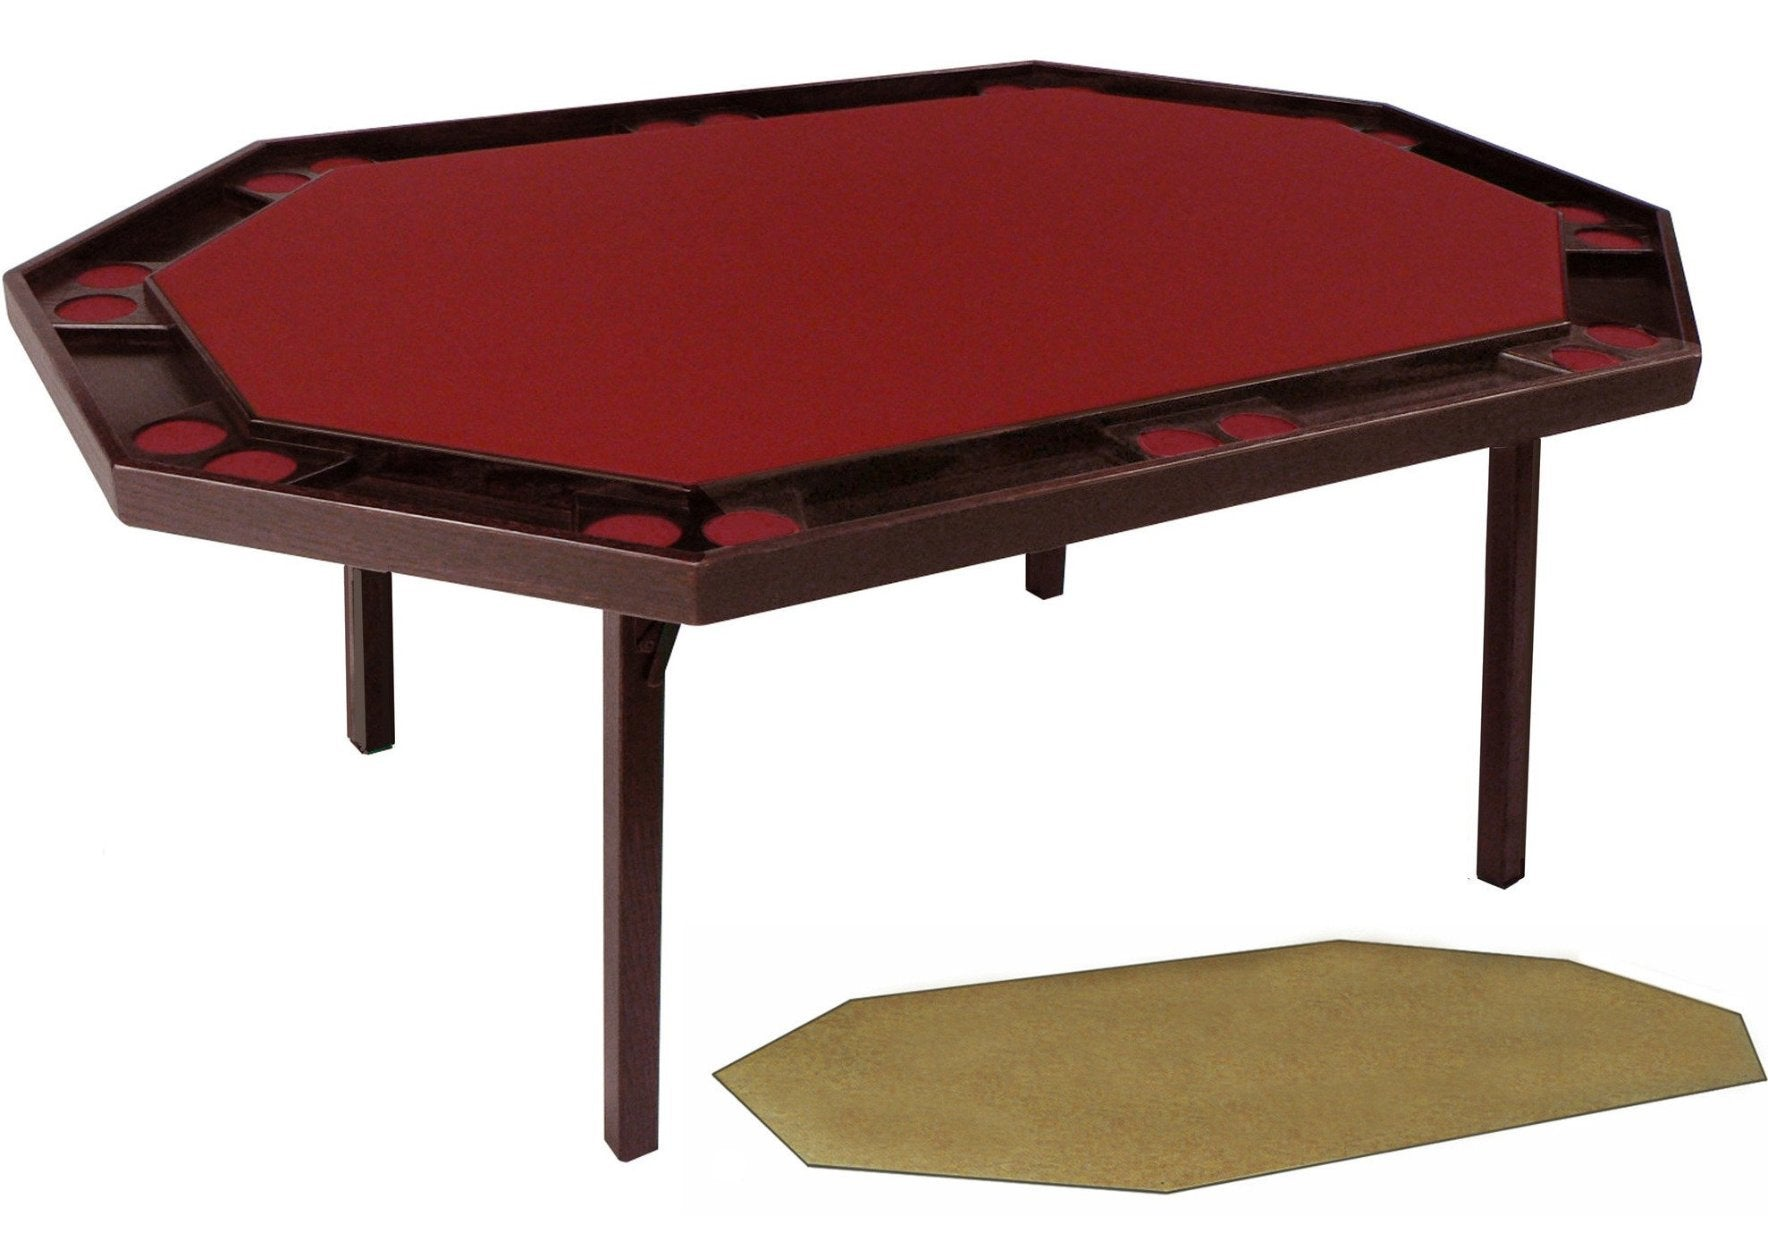 Oak Deluxe Folding Poker Table (includes a utility service top), by Kestell, O-872